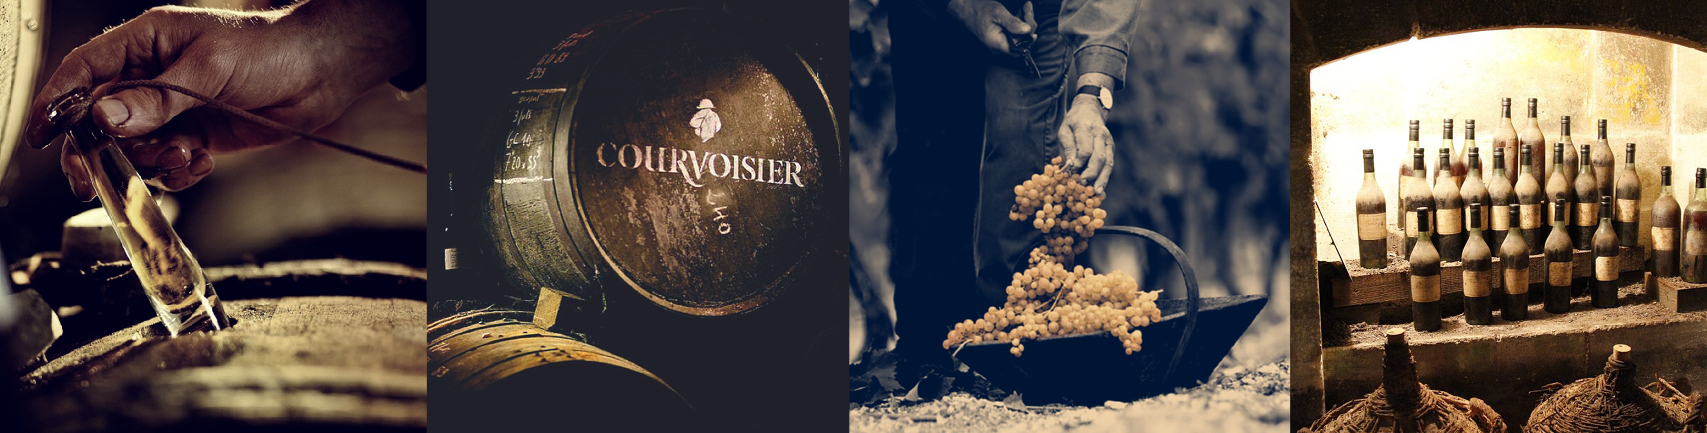 brand-page-banner-image-courvoisier-2.jpg